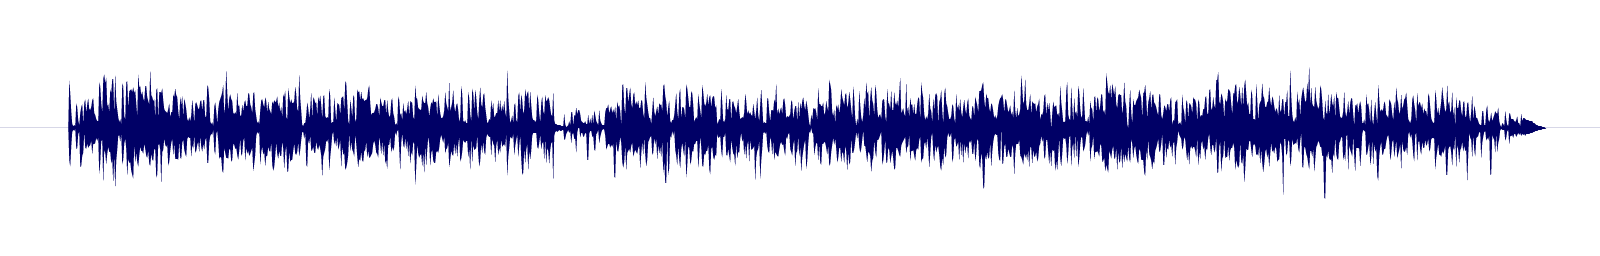 waveform of track #108545